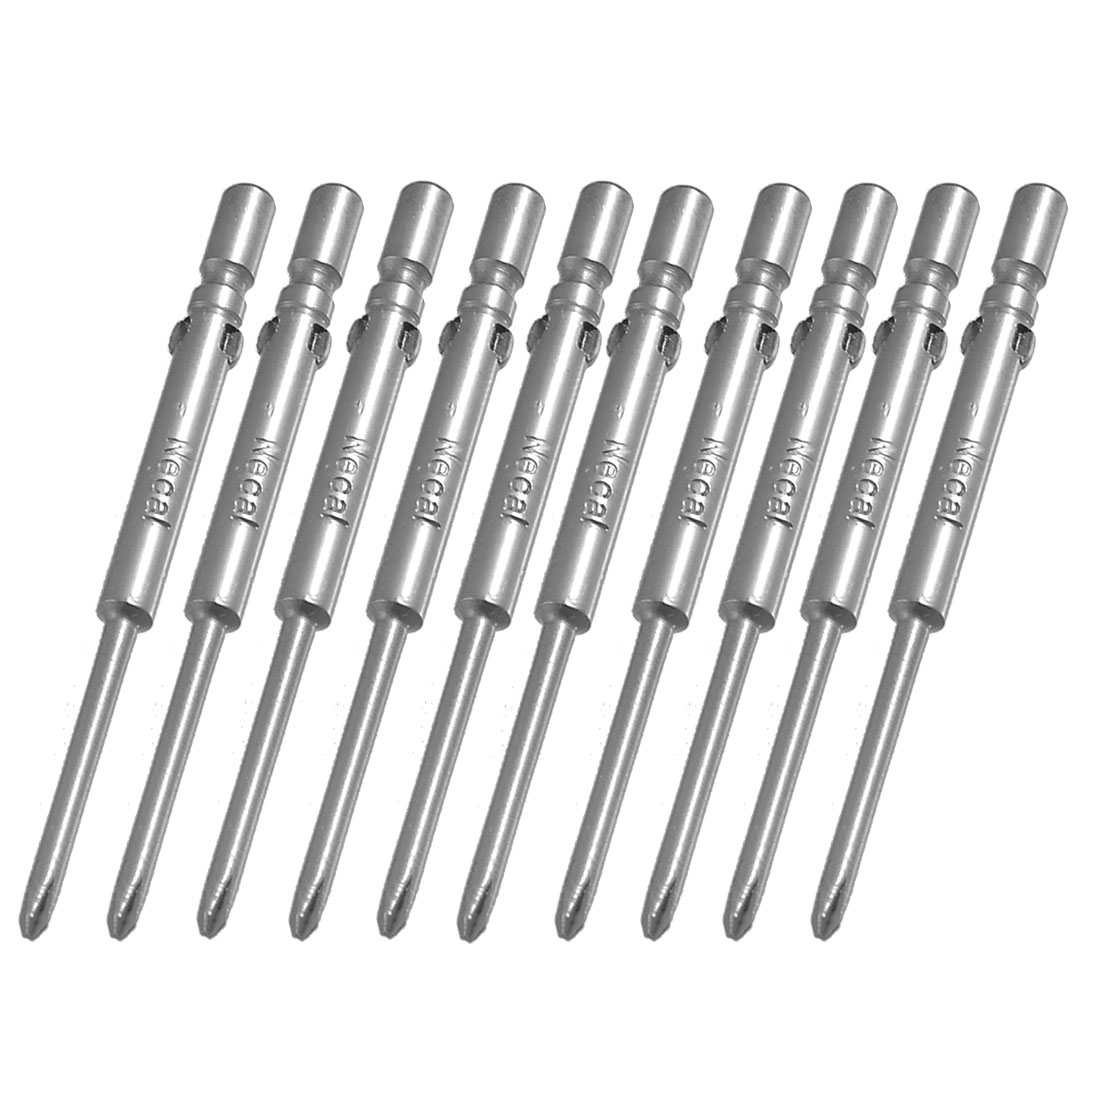 Gray Magnetic 4mm x 60mm x 2mm Phillips PHO Screwdriver Bits 10 Pcs